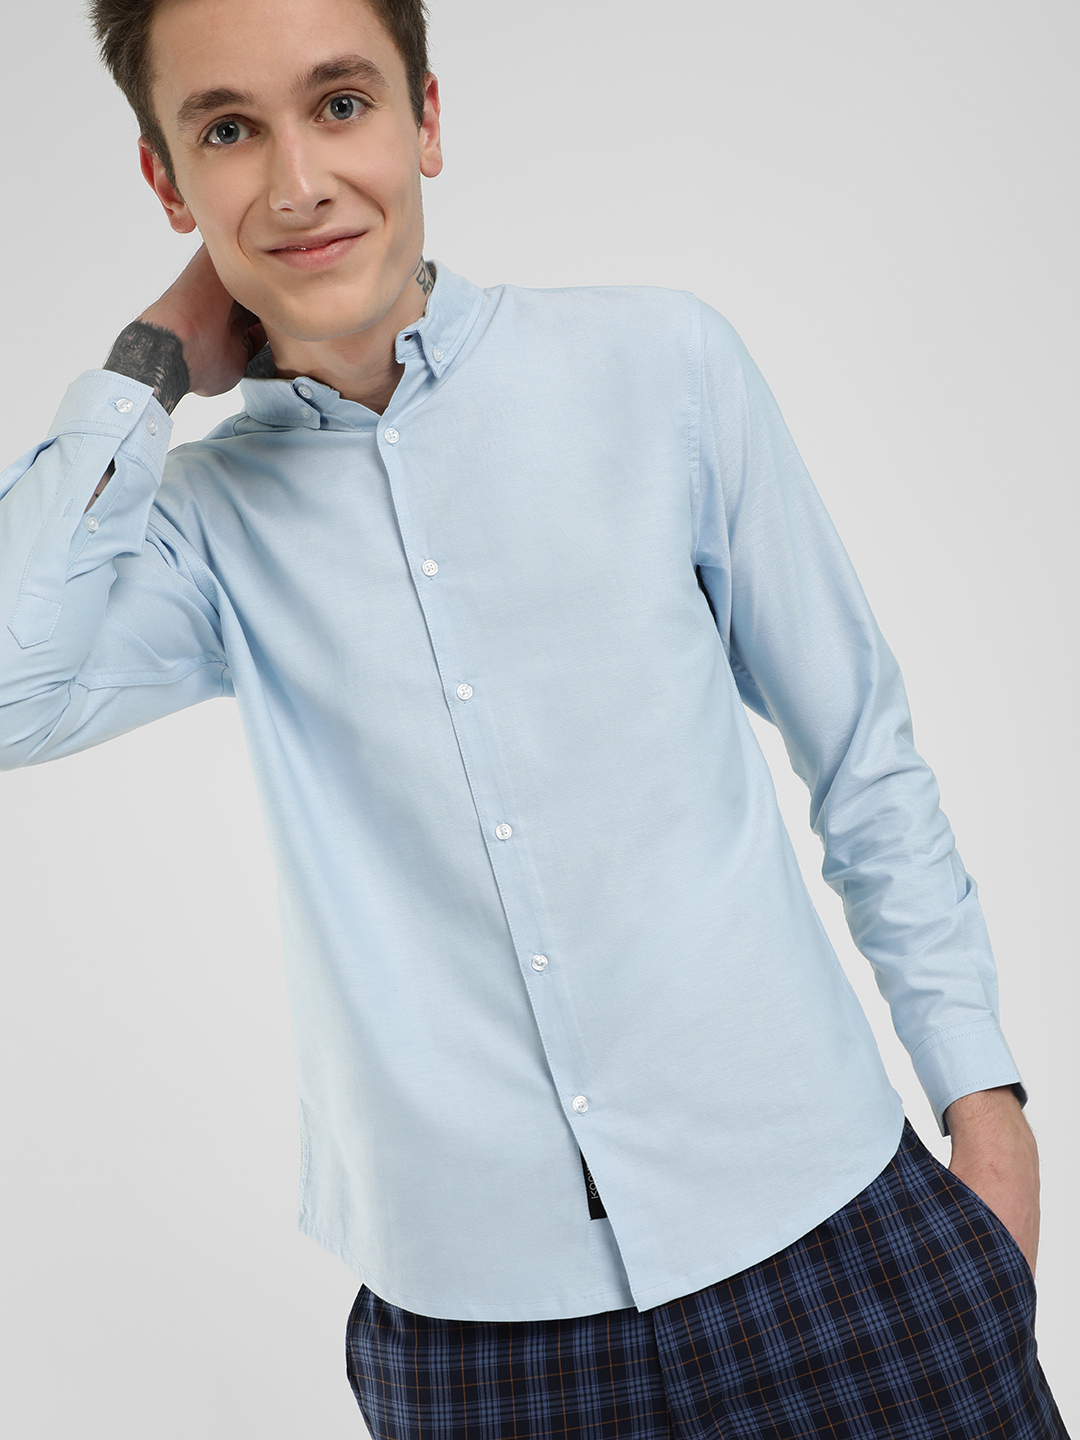 KOOVS Blue Oxford Long Sleeve Shirt 1